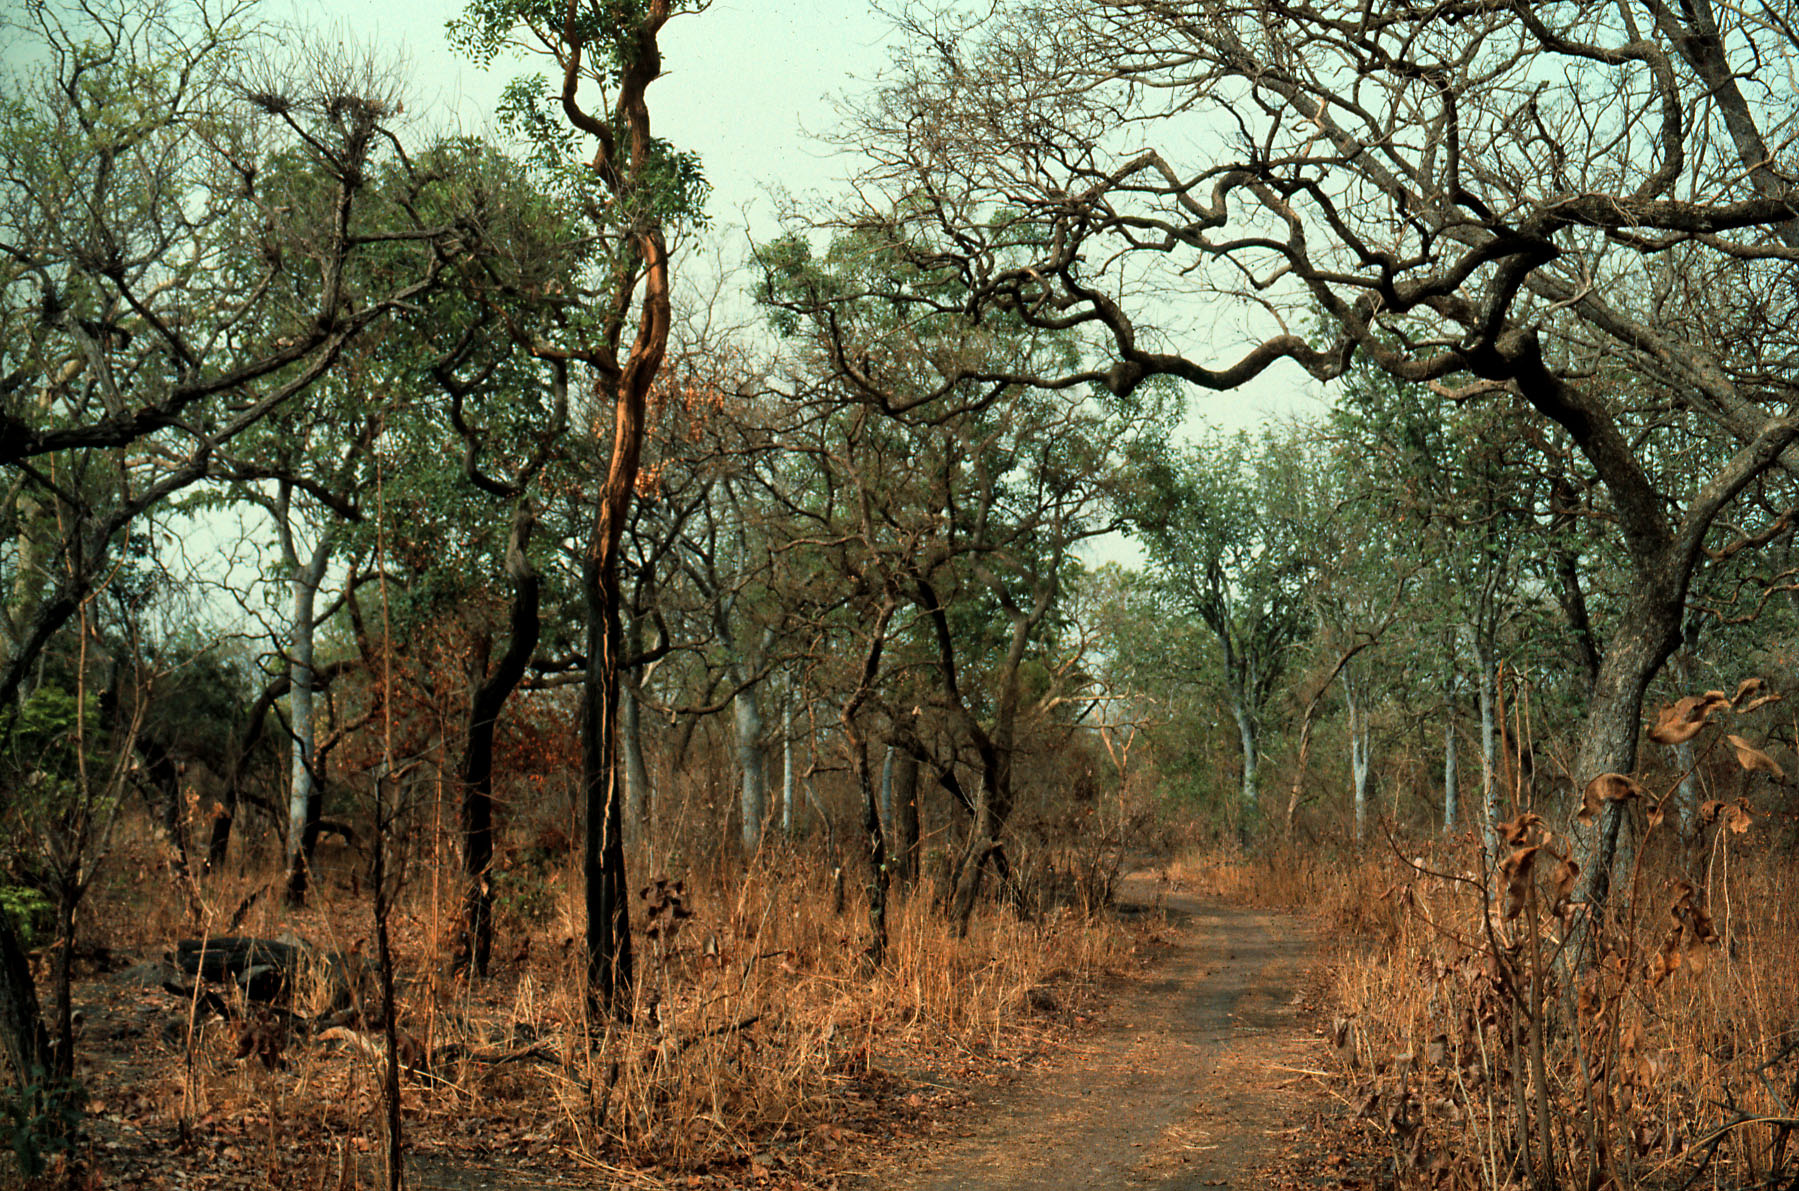 Dry season woodland in south-central Senegal